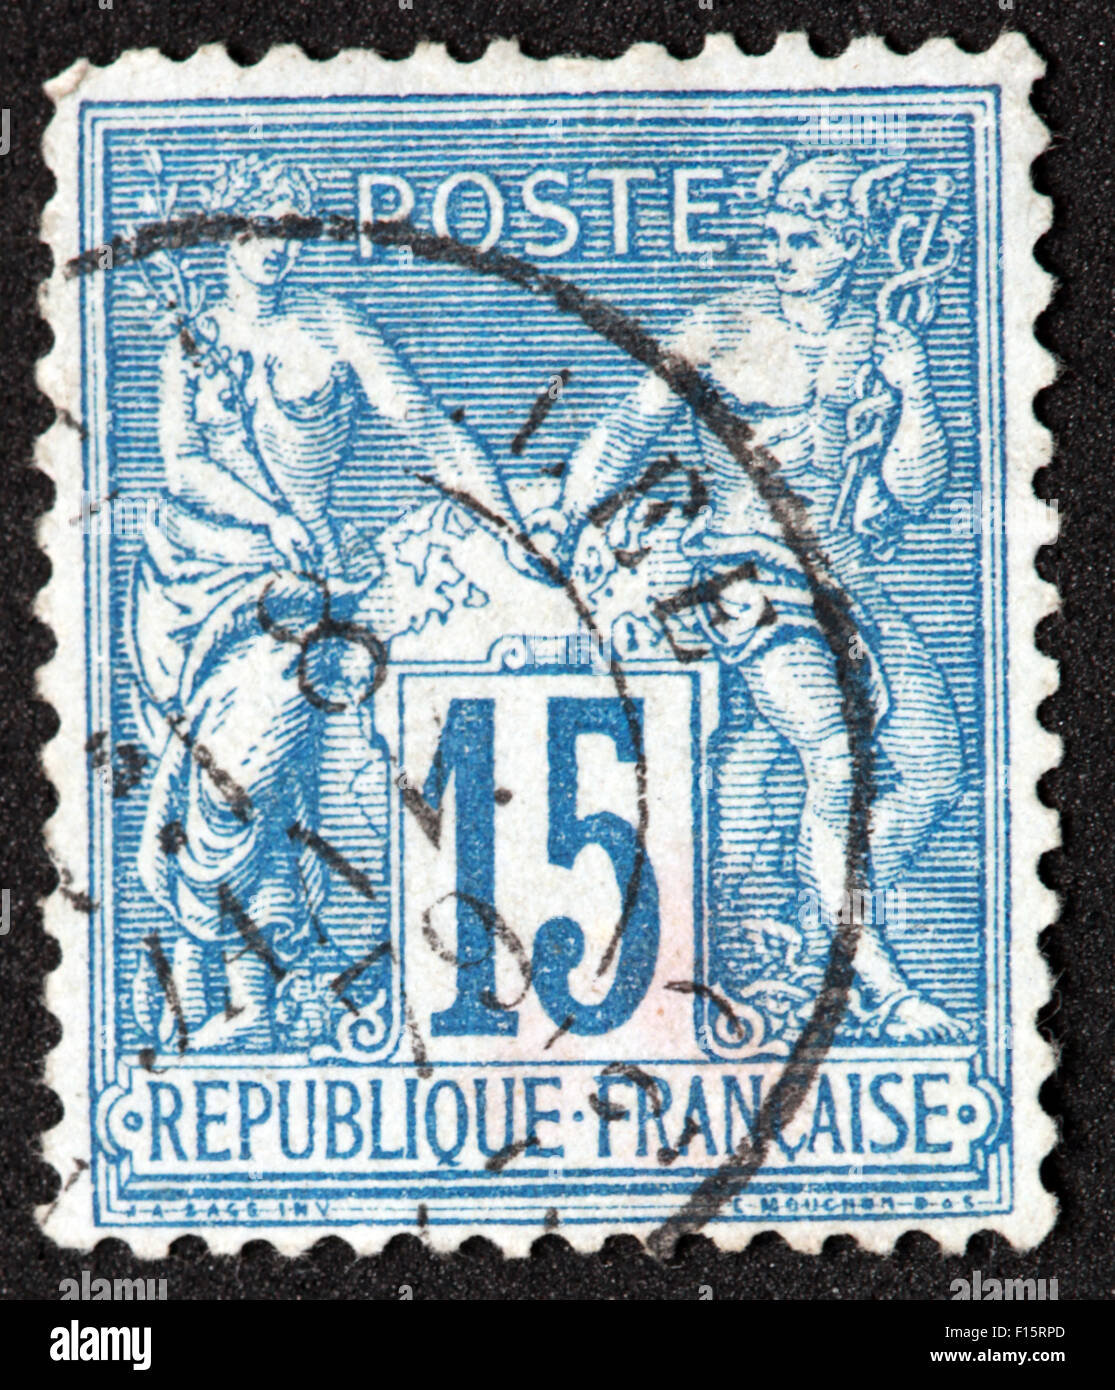 International Post,star,Used and Postmarked,Used,and,postmarked,perforated,stamp,Used,and,postmarked,Stamp,post,posting,mail,hobby,perforation,mark,postage,stamp,print,stamp,cancelled,stamp,payment,correspondence,postman,collection,collector,philately,cents,Classic,Francais,Gotonysmith,post,posting,mail,hobby,perforation,mark,postage,stamp,print,stamp,cancelled,canceled,stamp,payment,correspondence,postman,collection,collector,philately,philatelist,letter,price,history,retro,Australian,Vintage,delivery,date,relationship,communication,Oz,Australia,DownUnder,classic rare unique Austrailian financial,investment,invest,value,British,empire,nation,canceled,printed on black background,close-up,closeup,close,up,sent,send,philately,mailing,shipping,postoffice,office,isolated,circa,special,colour,color,postmarked,marked,airmail,aged,antique,retro,cutting,historic,old,stamps,collection,stamp collection,album,Timbre,Sello,Stempel,Selo,Buy Pictures of,Buy Images Of,Down Under,Black background